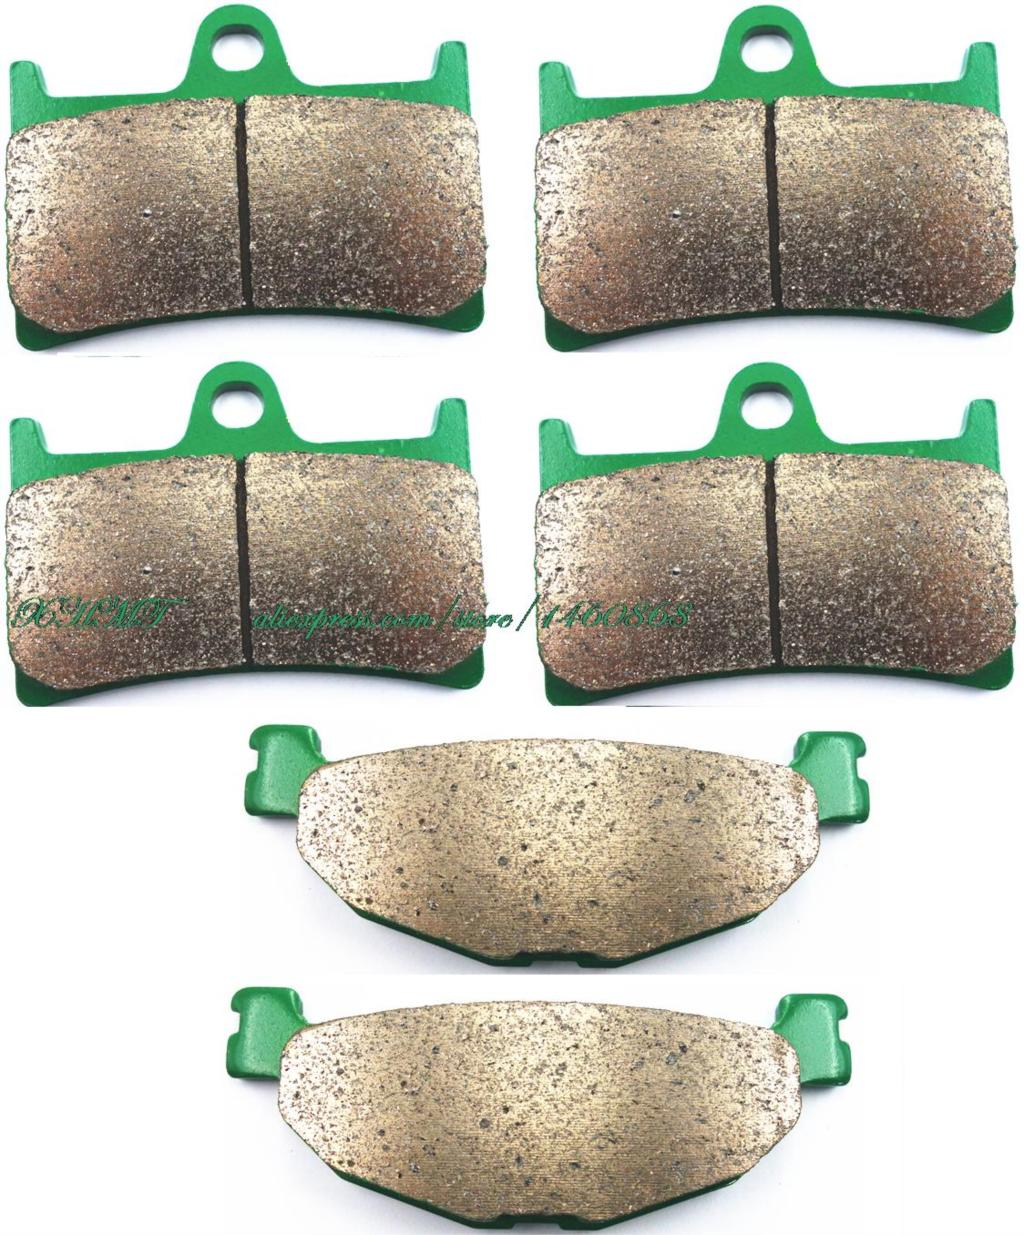 Brake Pads Set for YAMAHA XP500 TMAX500 T-MAX500 XP 500 T MAX T-MAX TMAX 2008 2009 2010 2011 / SV (Tech Max) ABS&NOABS 2011 & up 1 pcs motorcycle rear brake rotor disc braking disk for yamaha xp 500 t max 2001 2011 xp500 tmax abs 2008 2011